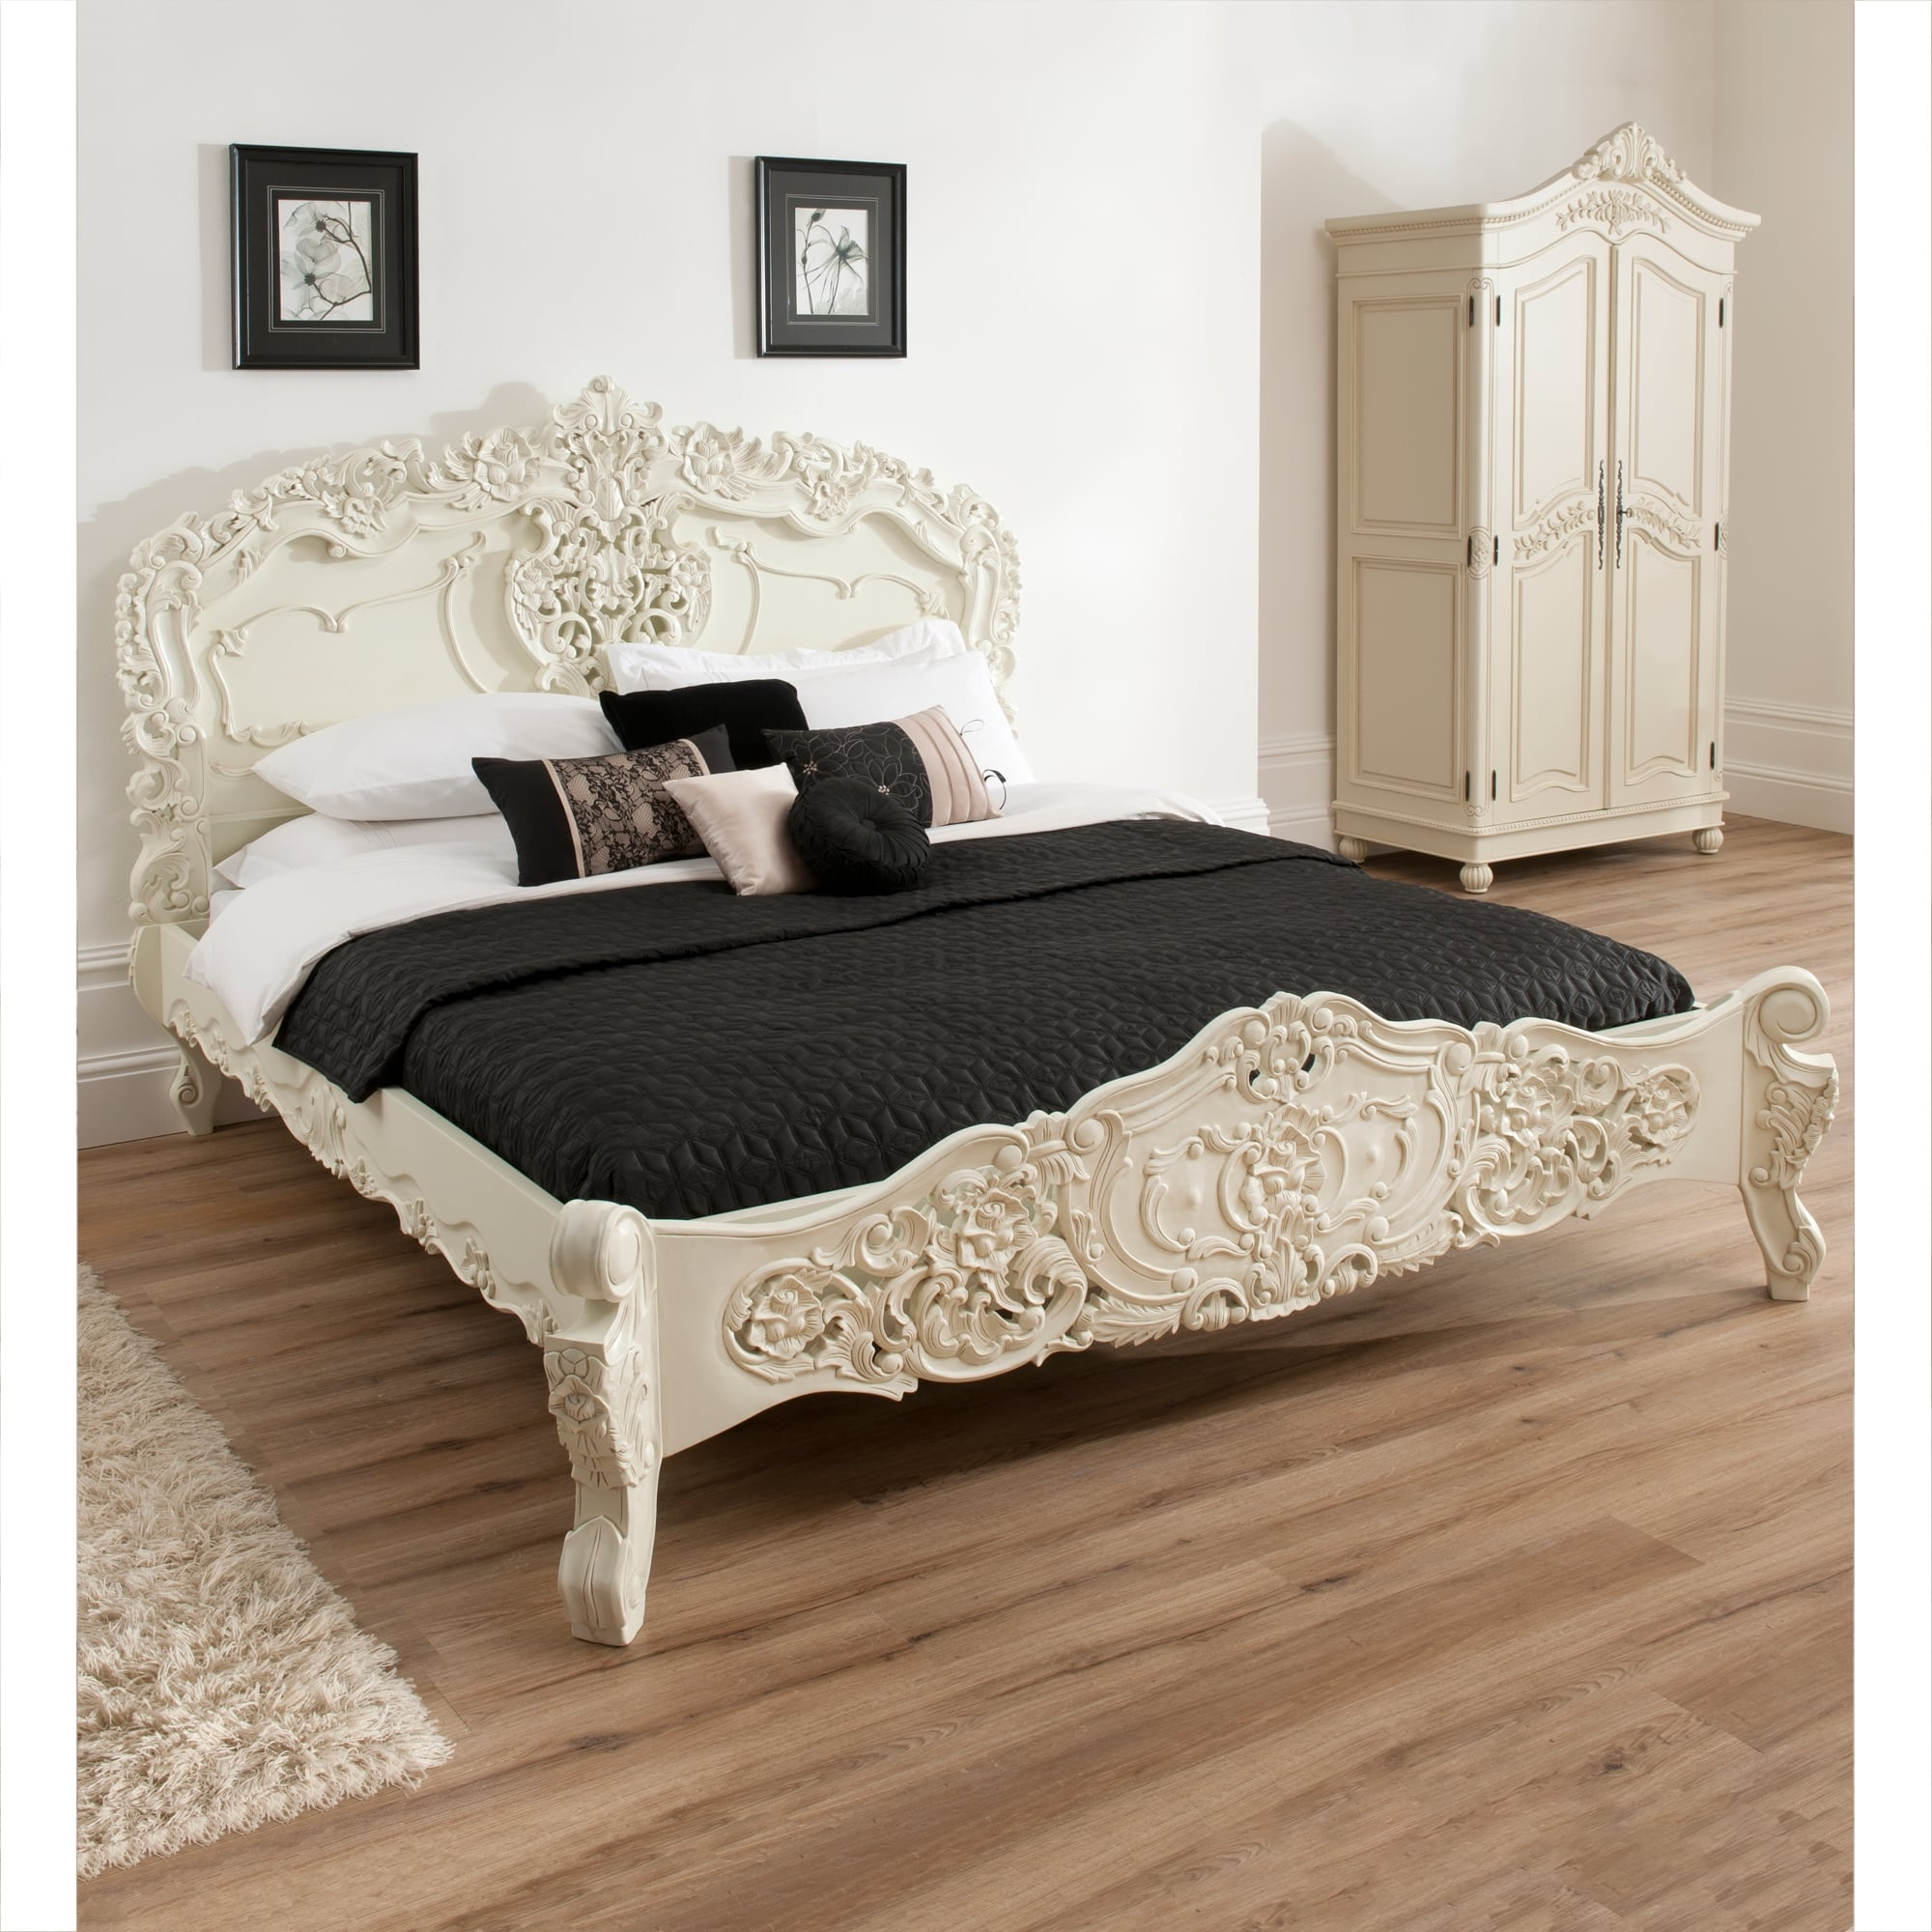 bordeaux ivory shabby chic style bed shabby chic furniture. Black Bedroom Furniture Sets. Home Design Ideas